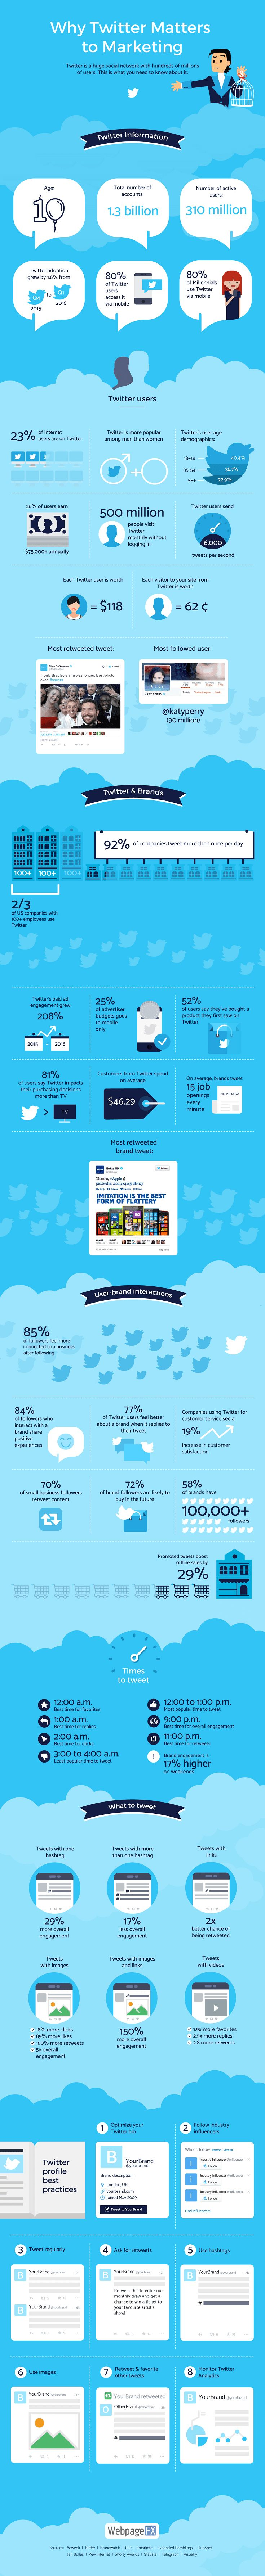 Twitter Marketing for Business: Why & How You Should Use It - @redwebdesign